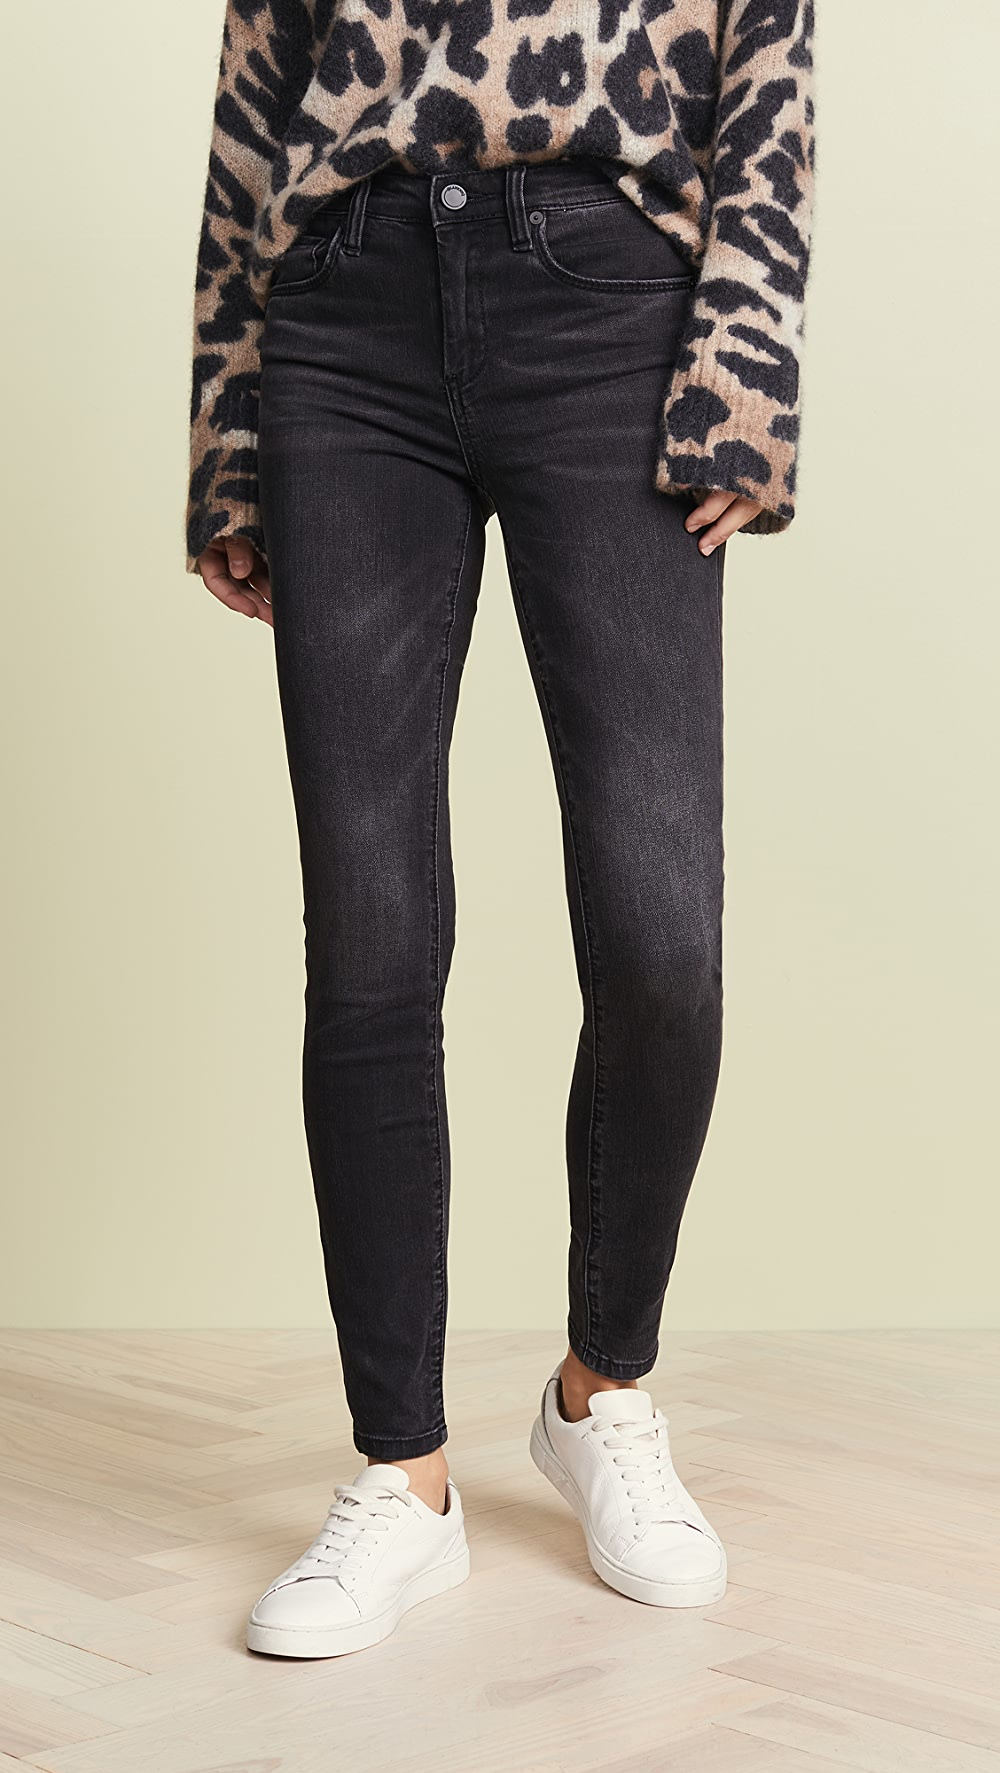 Discreet Blank Denim - The Bond Mid Rise Skinny Jeans Beneficial To The Sperm